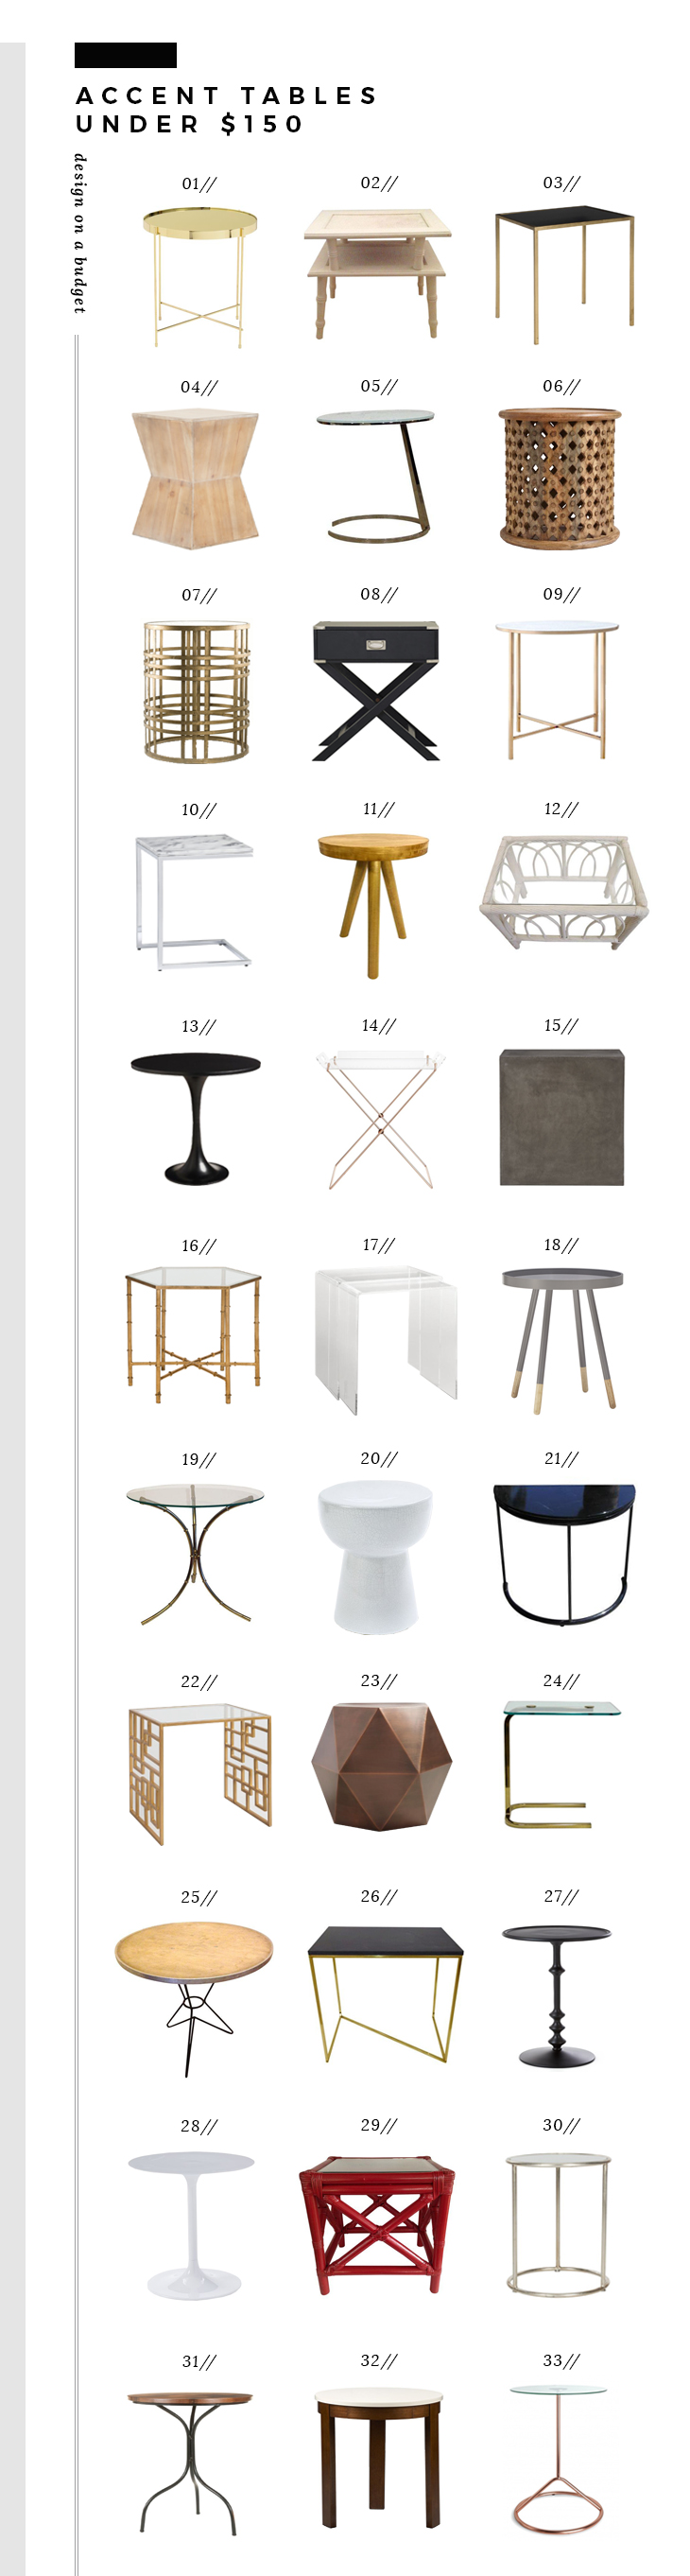 Accent Tables Under $150